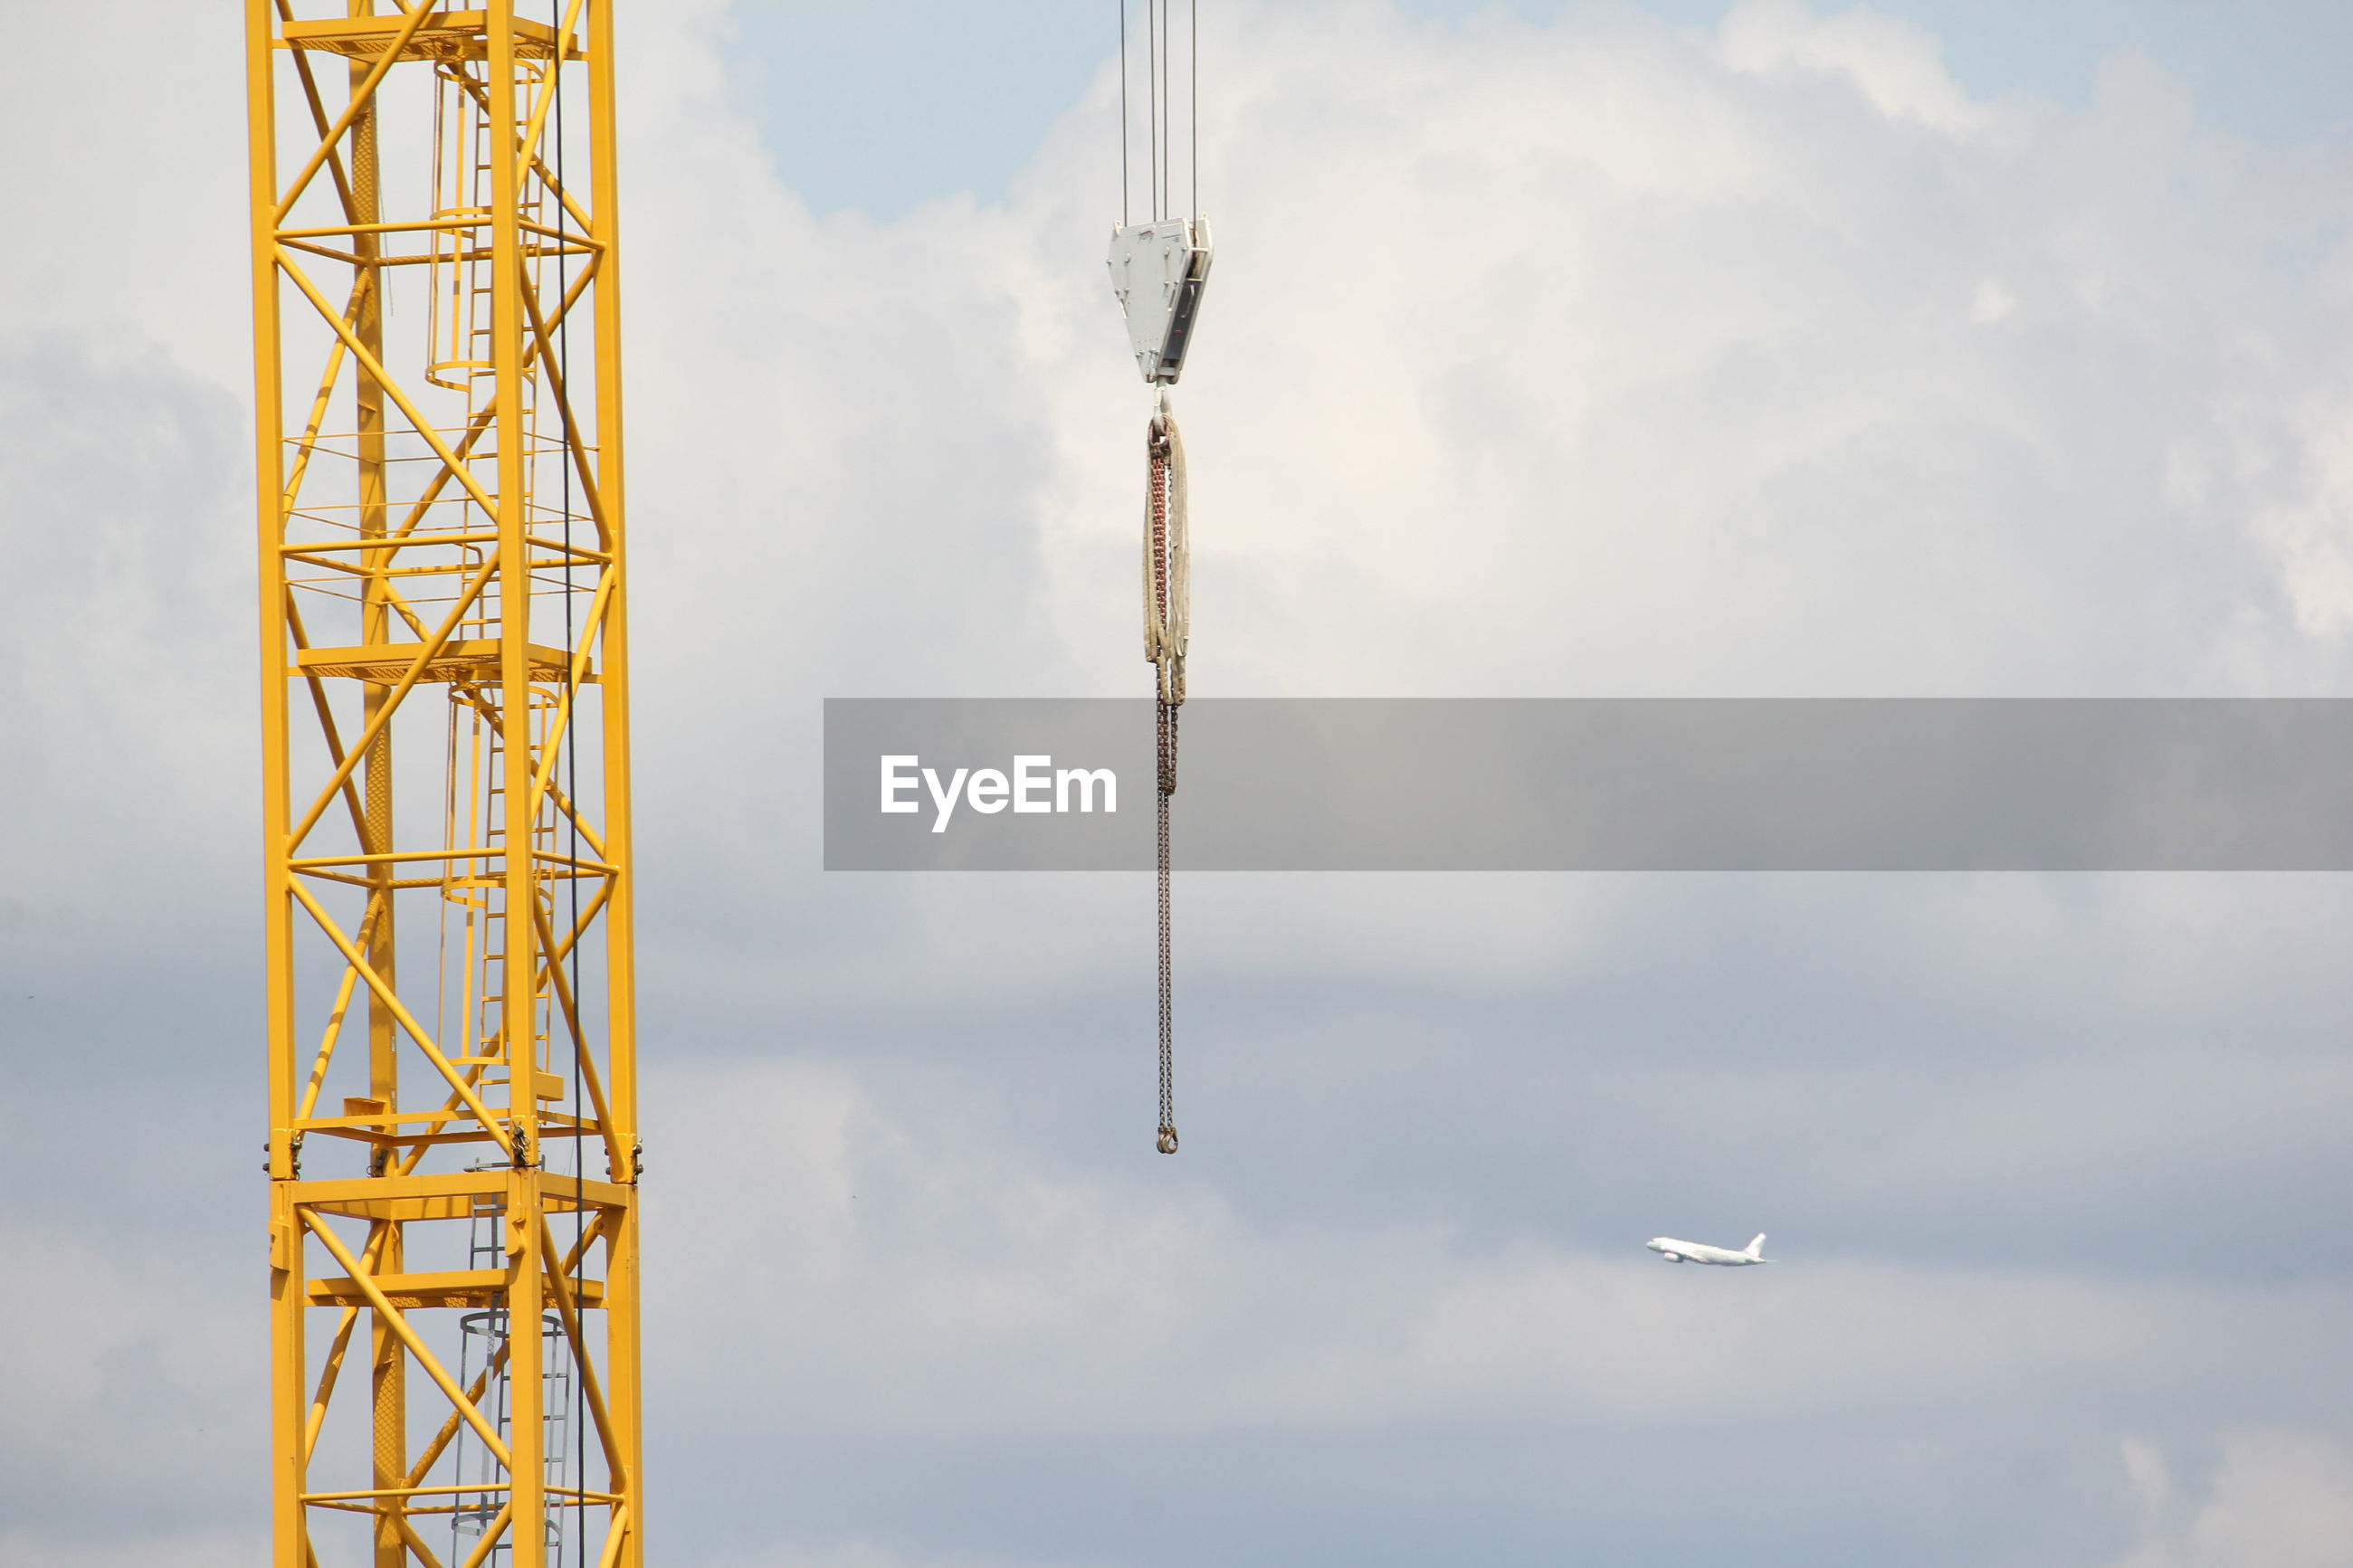 Low angle view of crane against sky with plane flying through chain